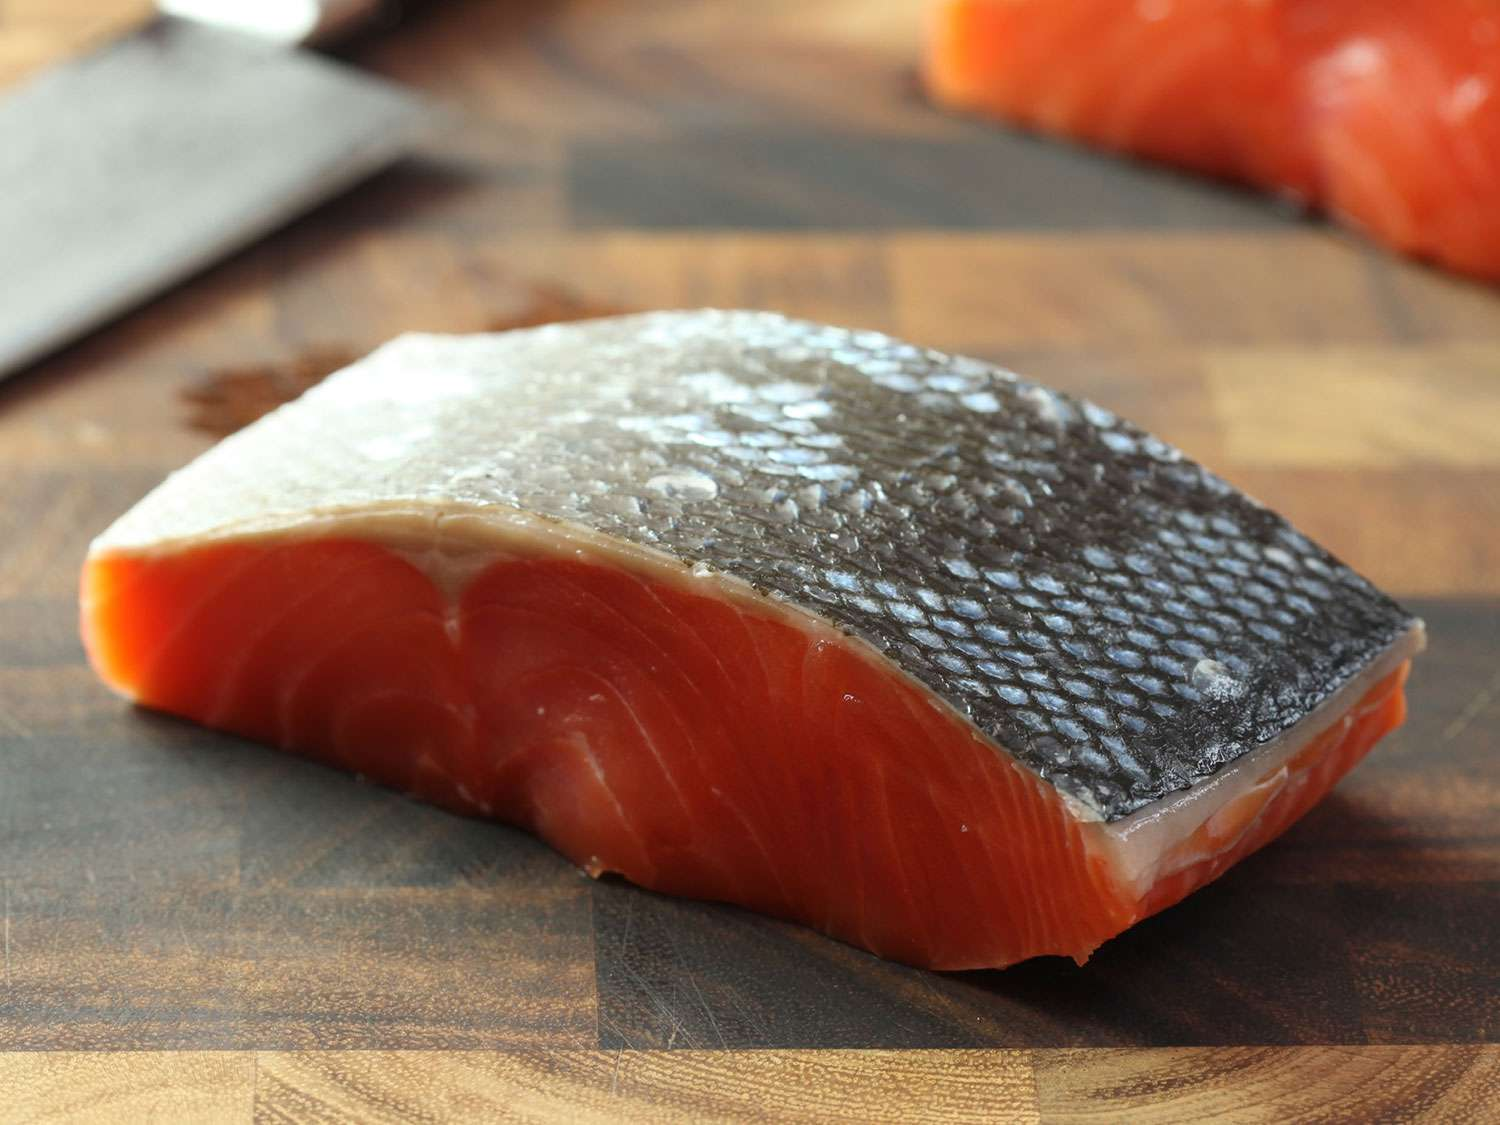 Raw, skin-on salmon fillet sitting skin-side up on a wooden cutting board.